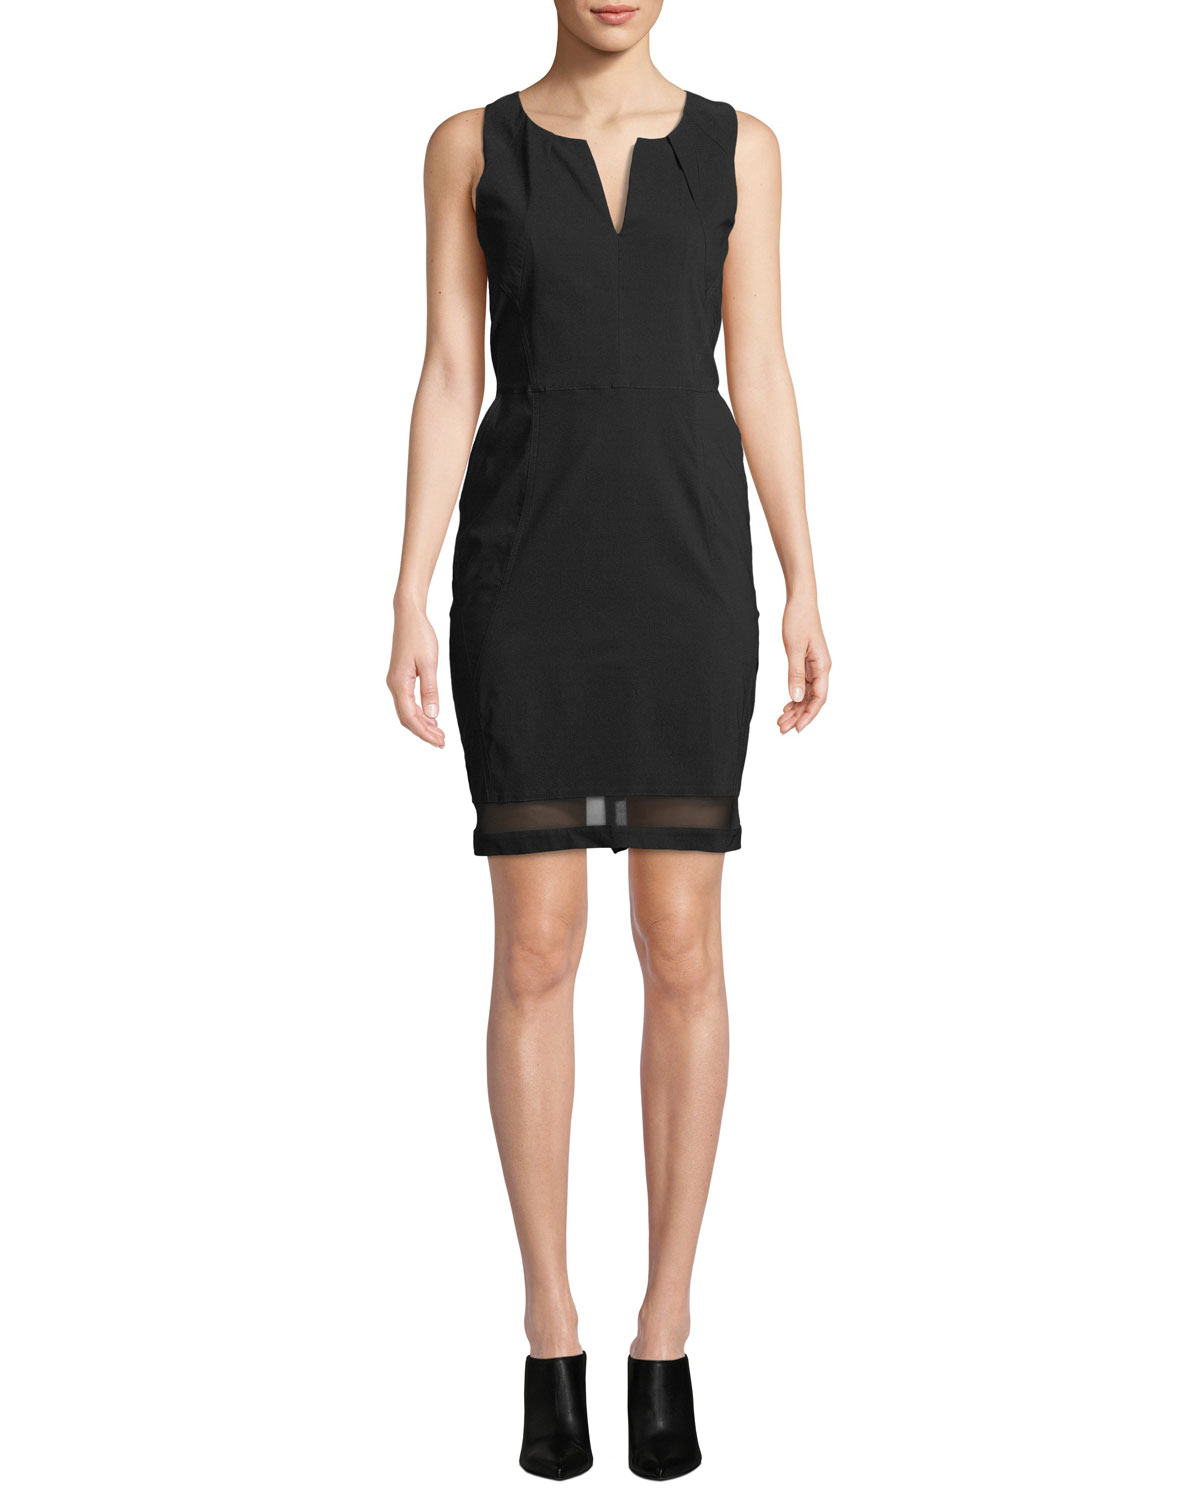 ANATOMIE Michelle Slim-Fit Sleeveless Dress W/ Mesh Inserts in Black